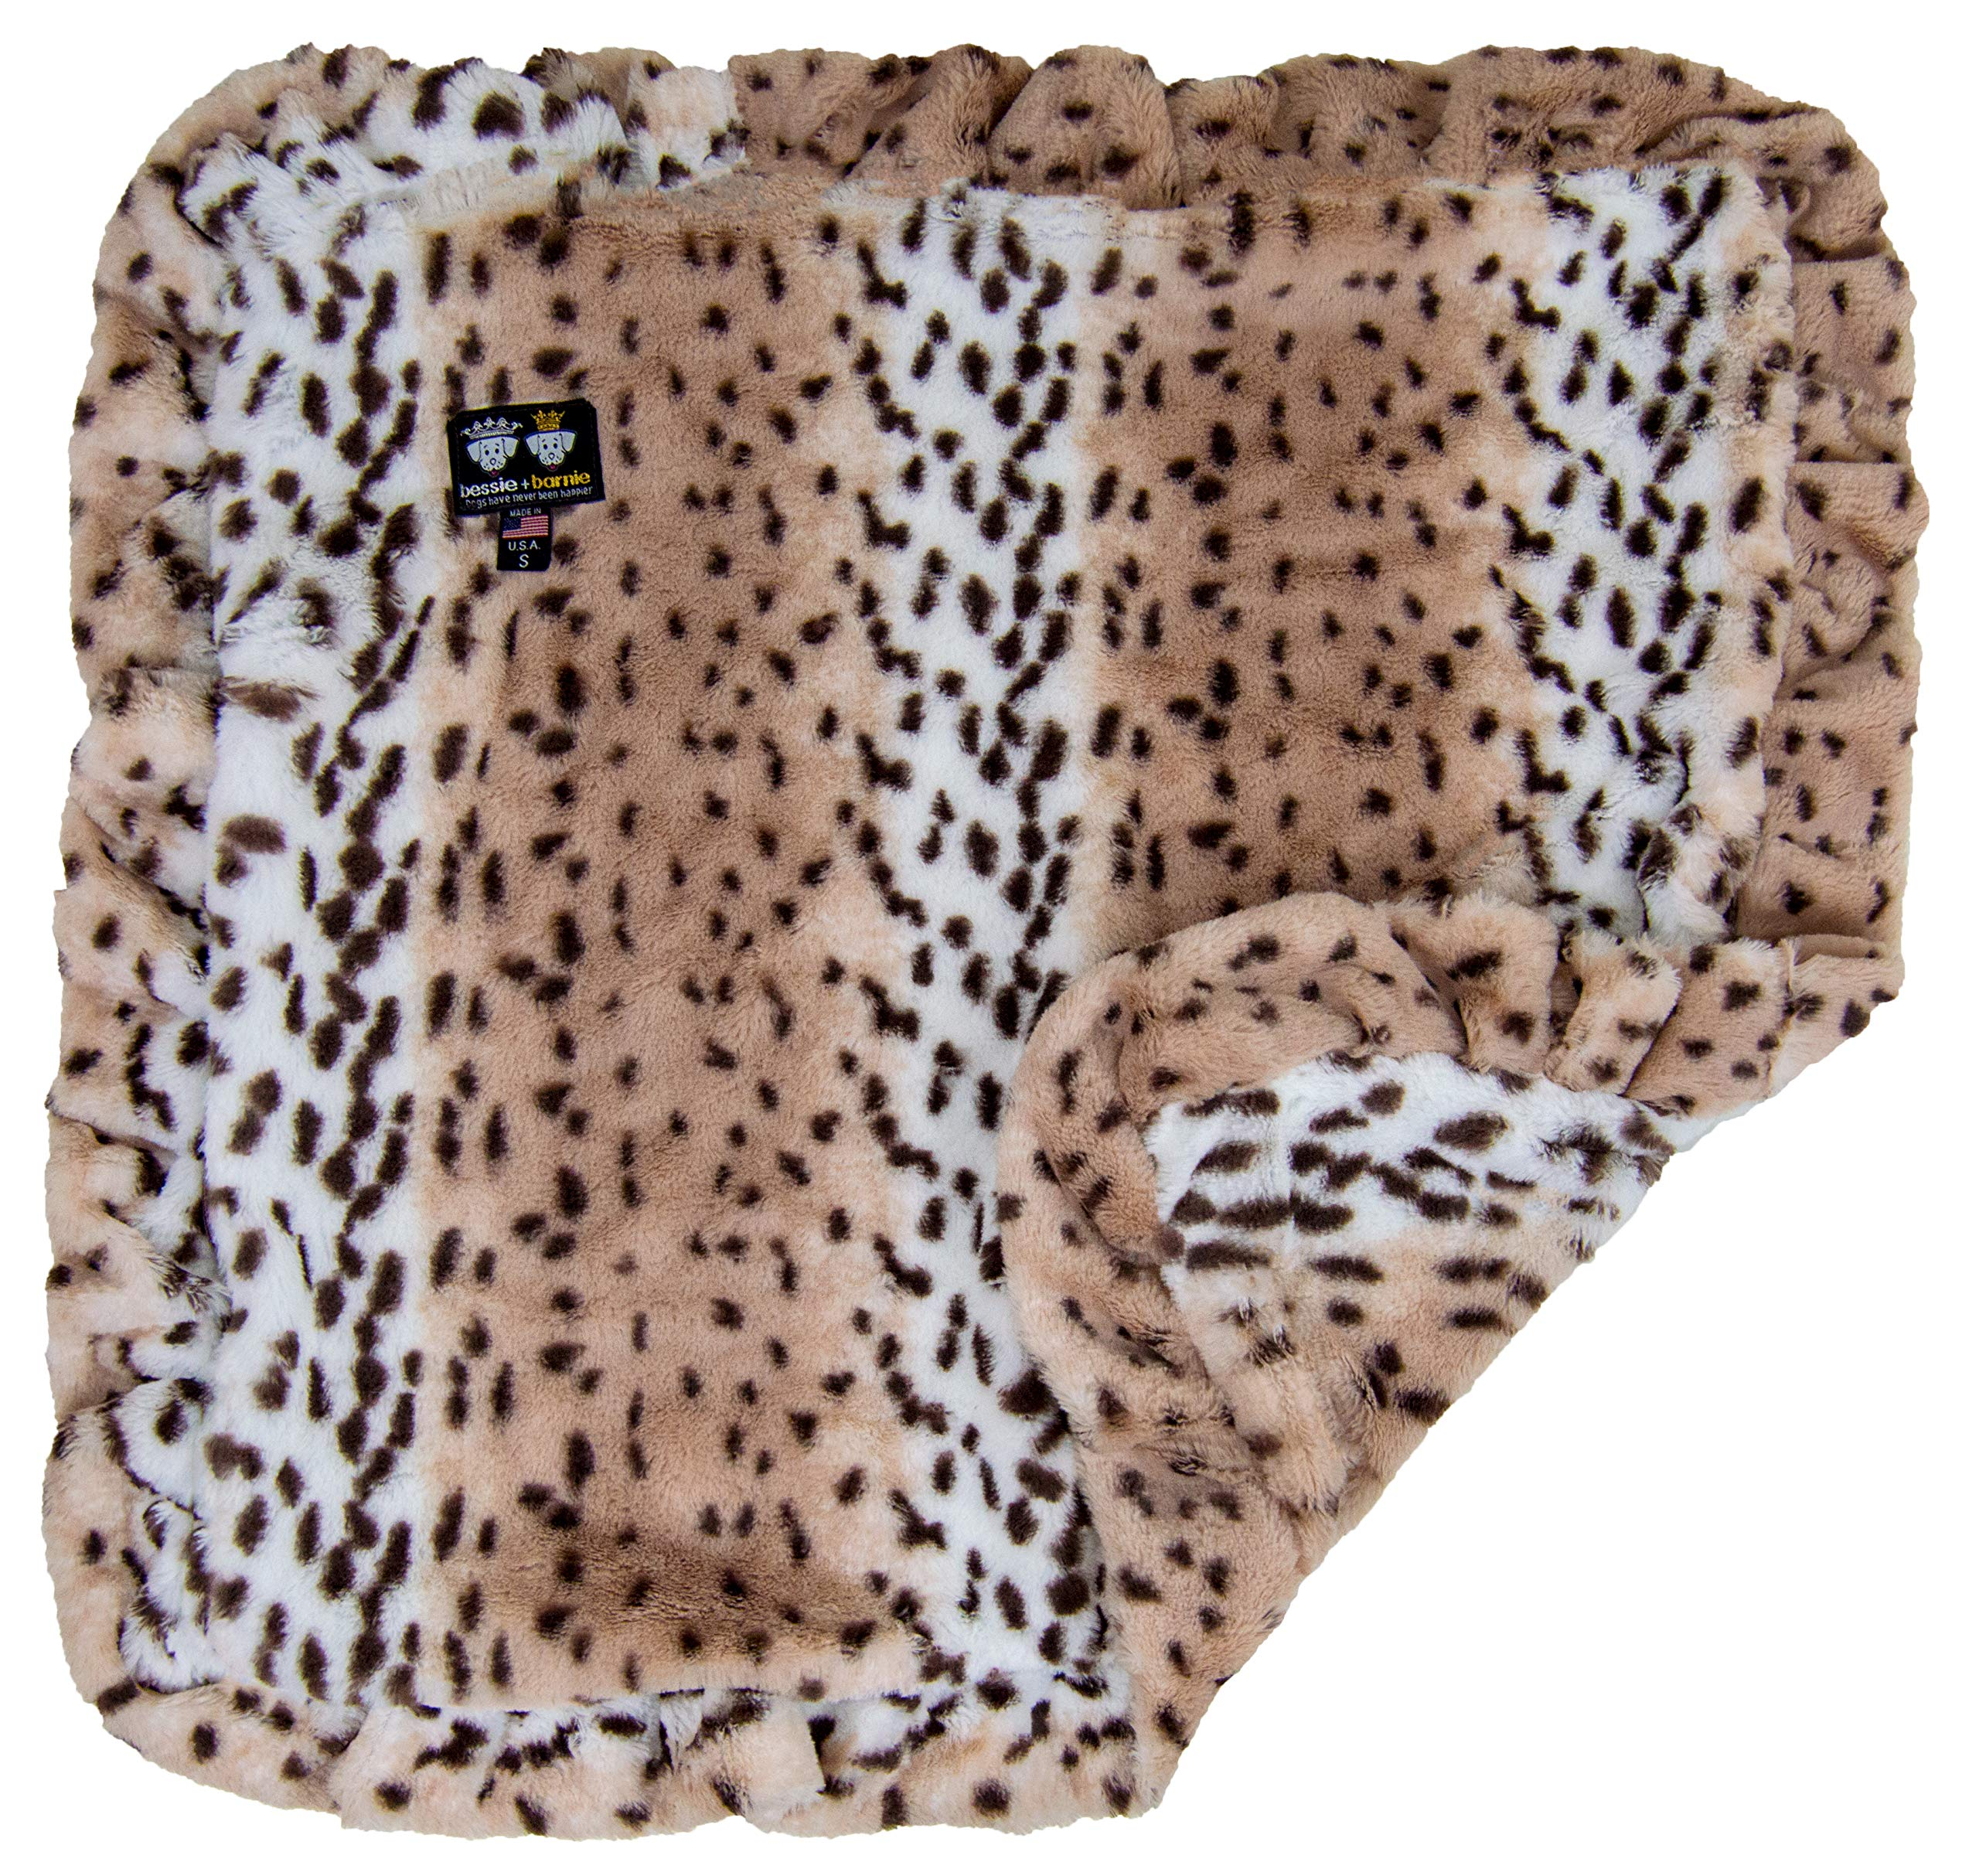 BESSIE AND BARNIE Aspen Snow Leopard (Ruffles) Luxury Ultra Plush Faux Fur Pet, Dog, Cat, Puppy Super Soft Reversible Blanket (Multiple Sizes)